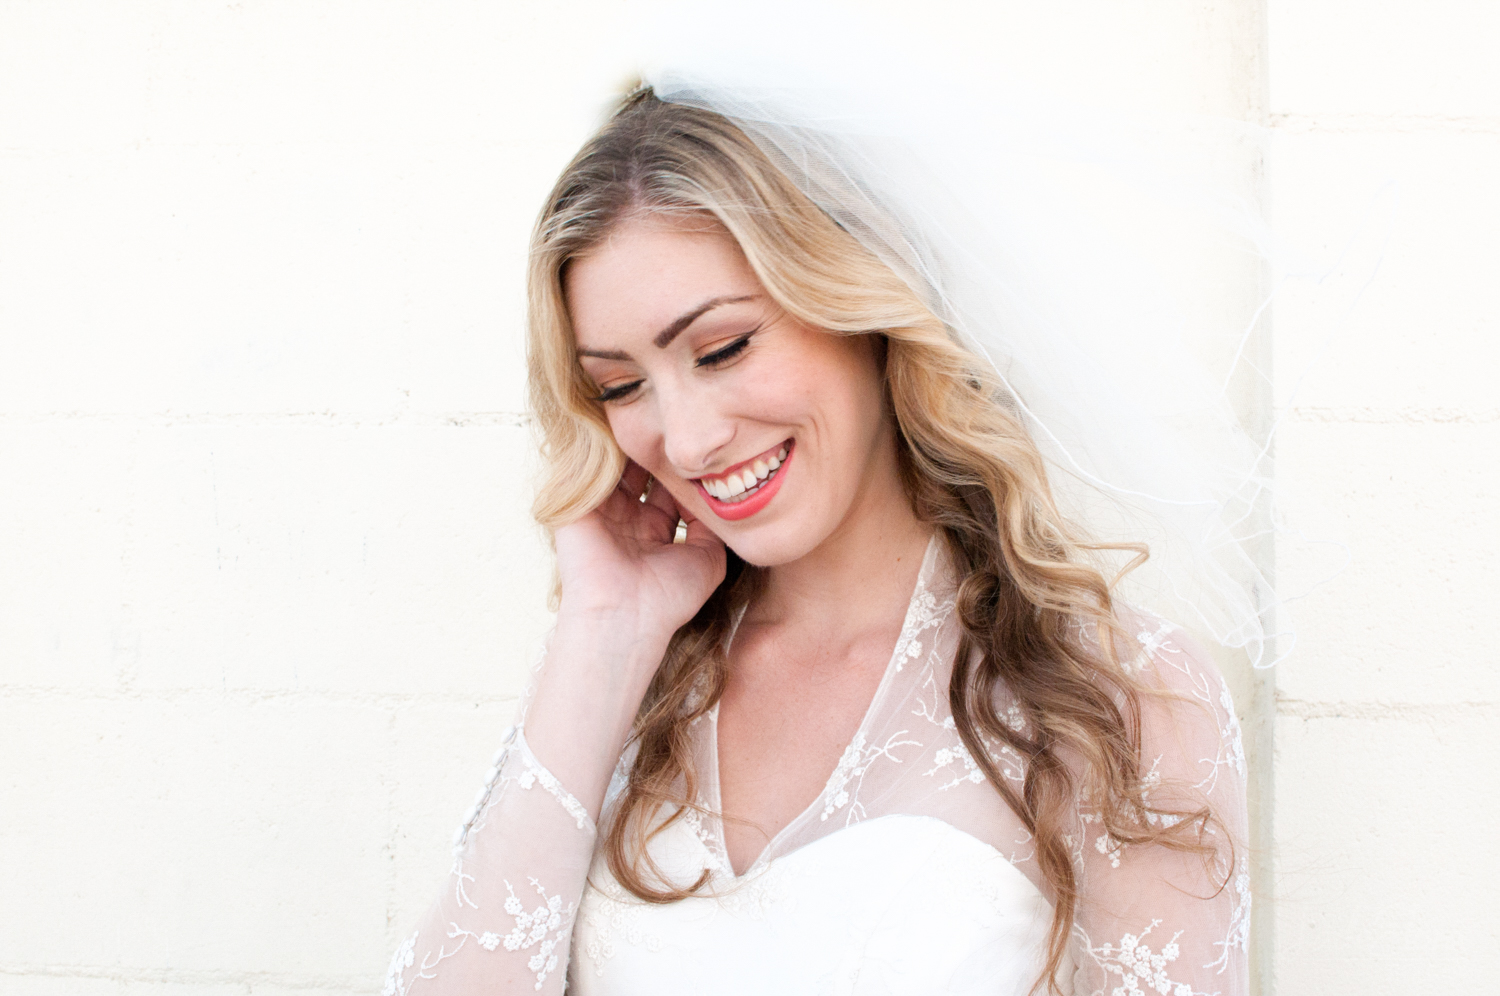 Smiling Blonde Bride in Vintage Dress